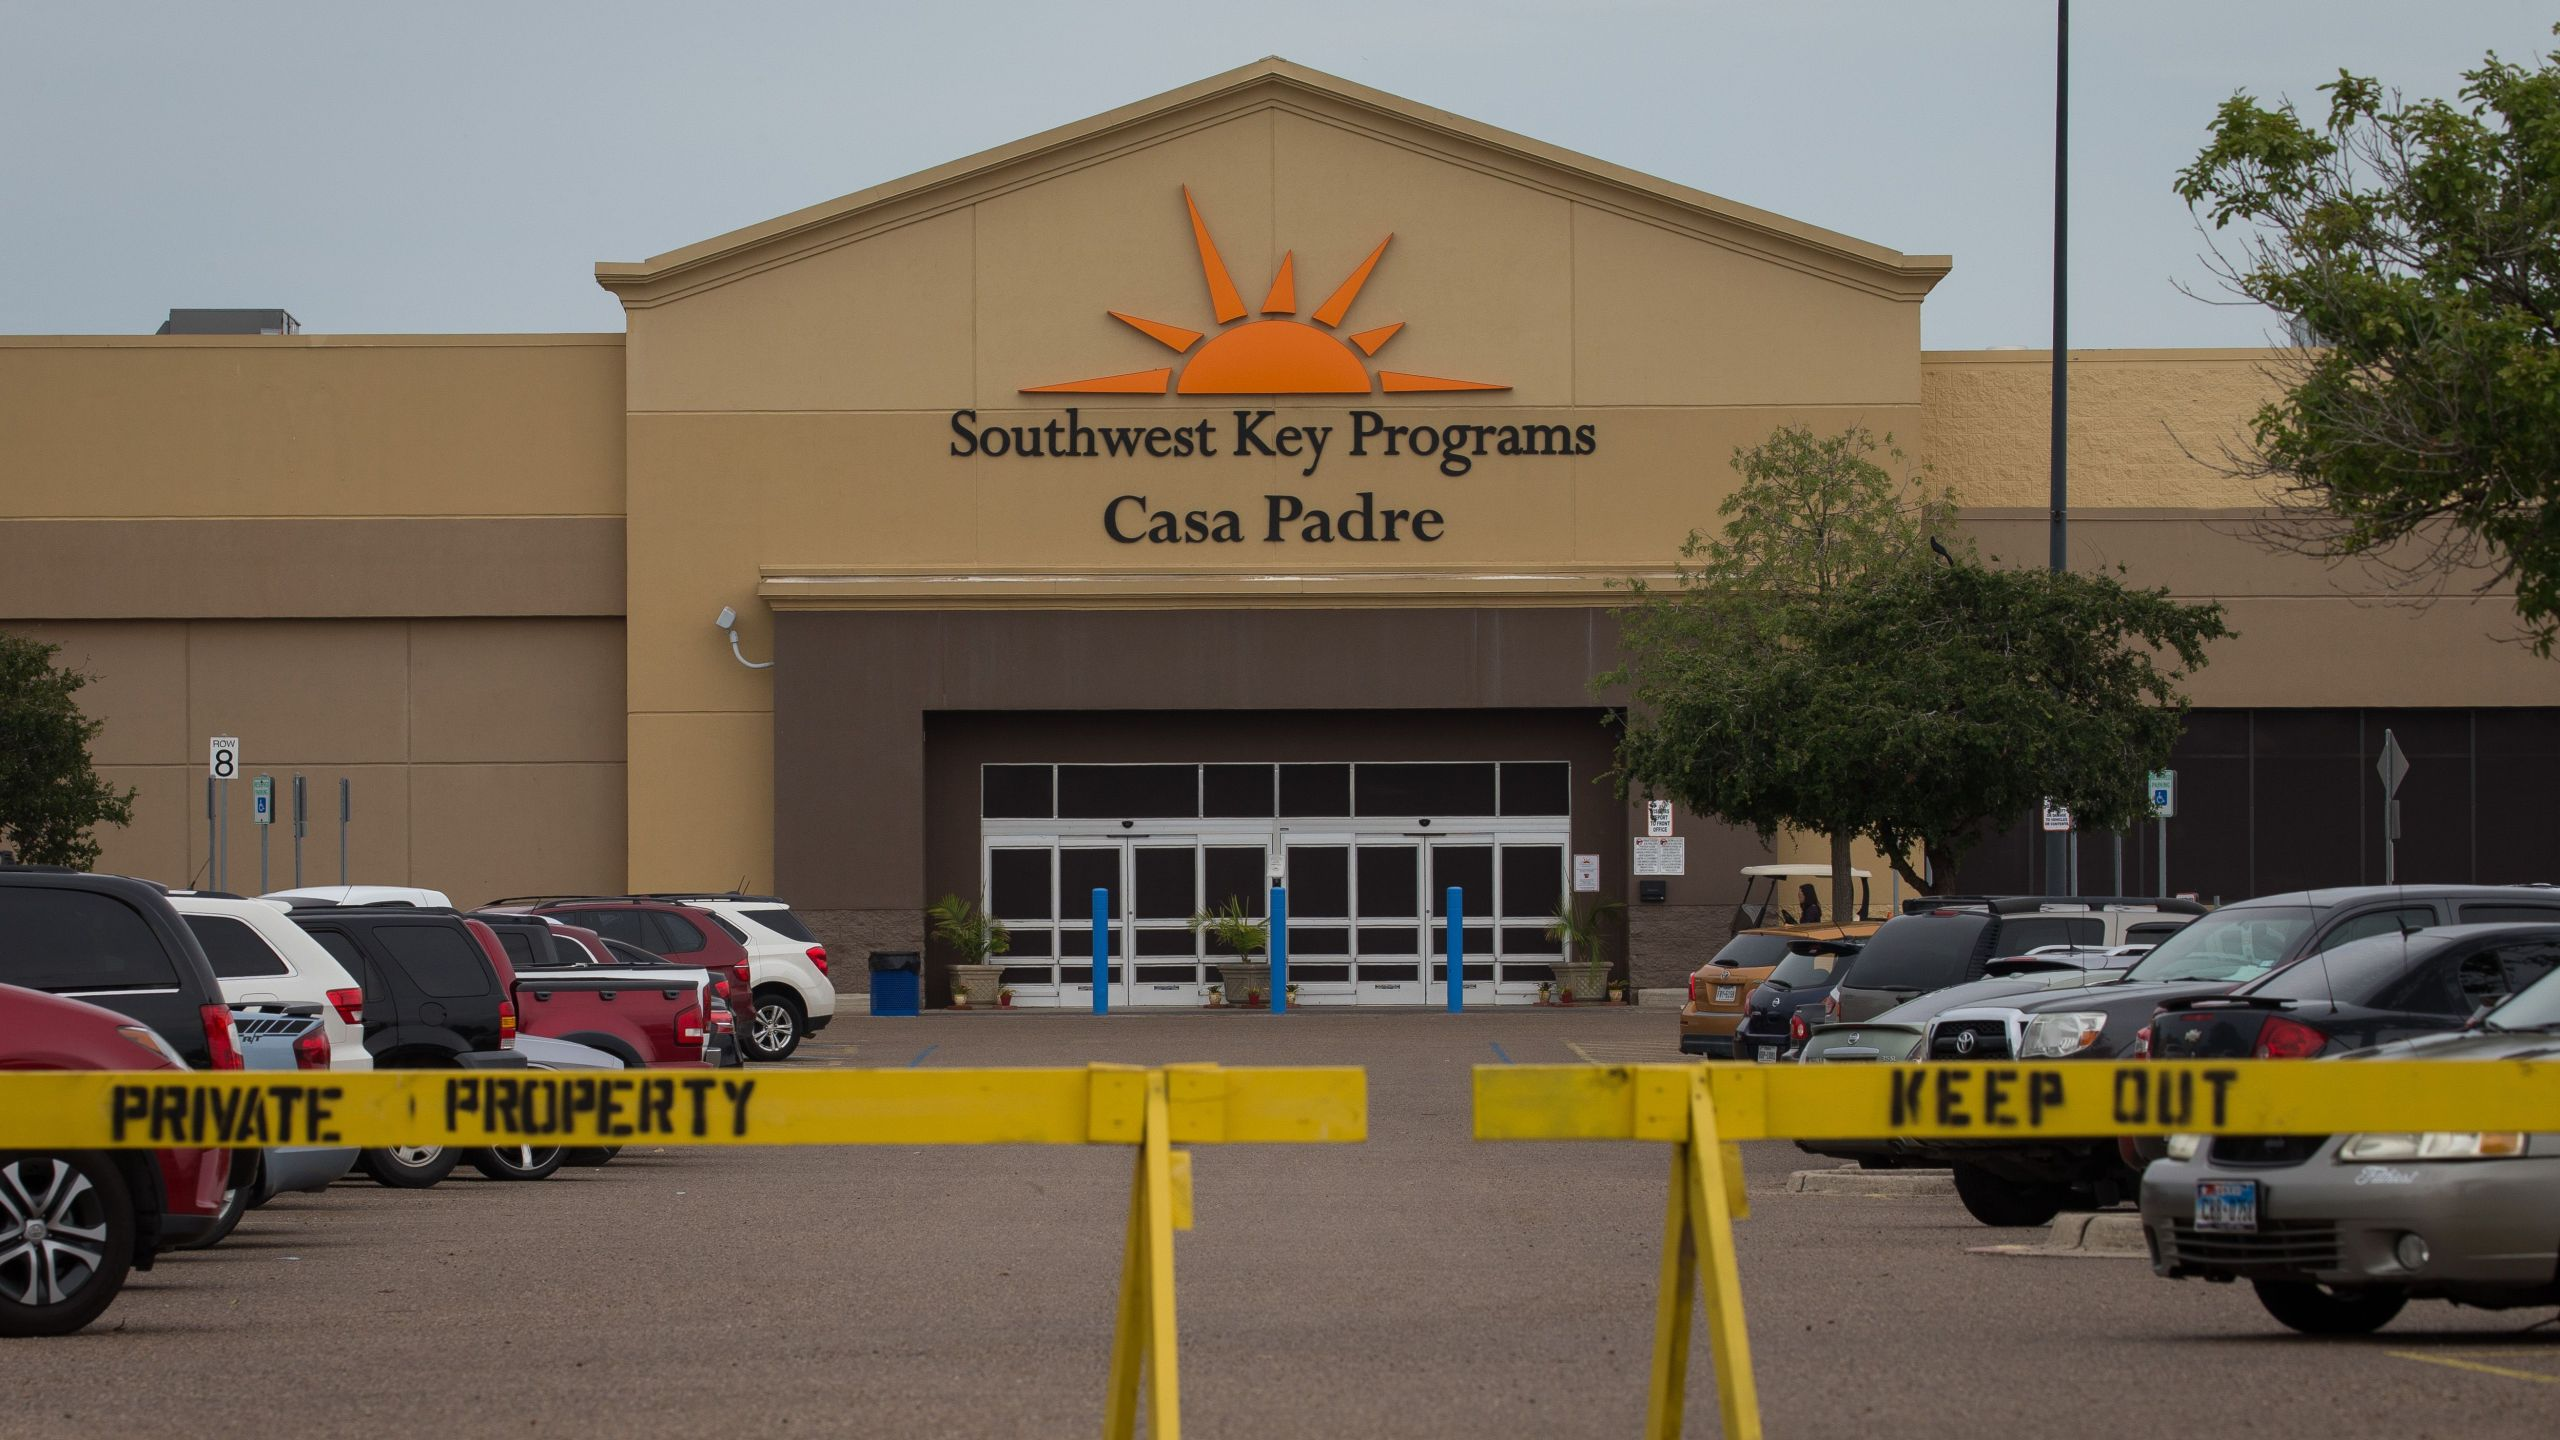 A former Walmart Supercenter now being used as a migrant children's shelter is pictured on June 18, 2018, in Brownsville, Texas. (Credit: Loren Elliott/AFP/Getty Images)